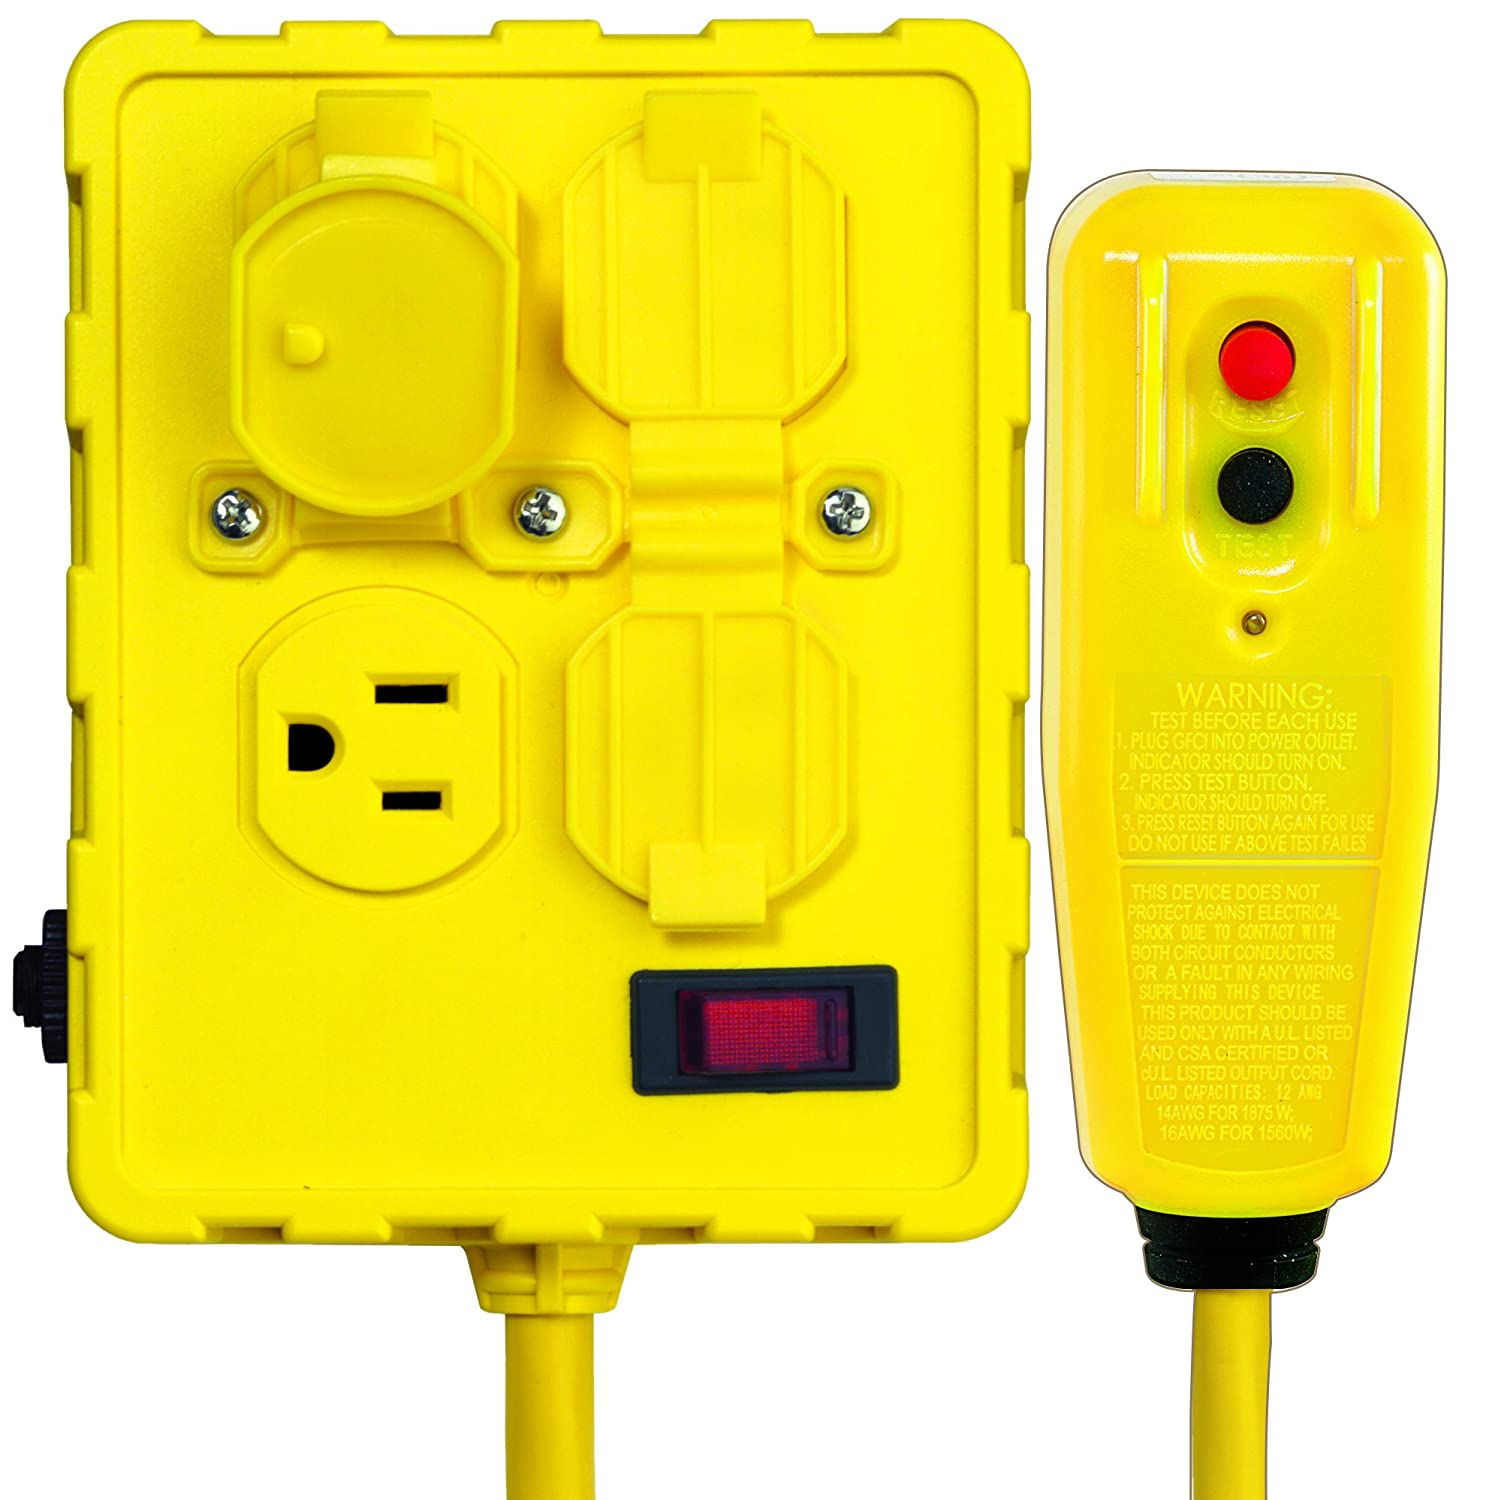 Tower Manufacturing 30434052 Auto Reset Right Angle Gfci Cord And 4 Electrical Wiring In The Home Outlet Pool Power Box 6 Feet Yellow Industrial Scientific